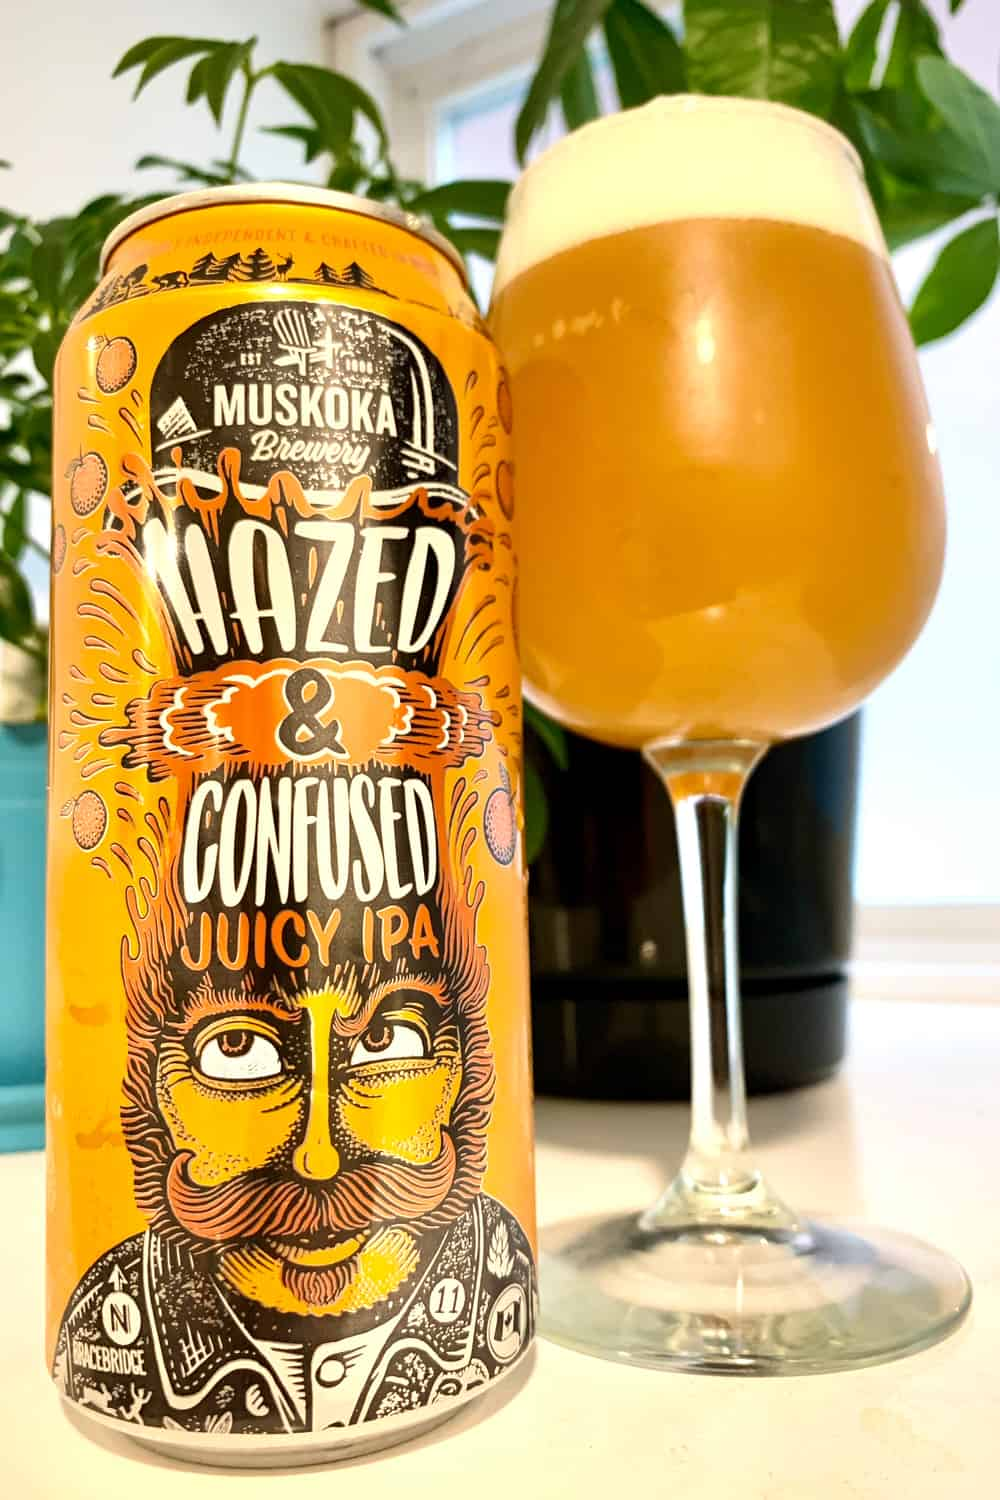 Where does the hazy IPA come from